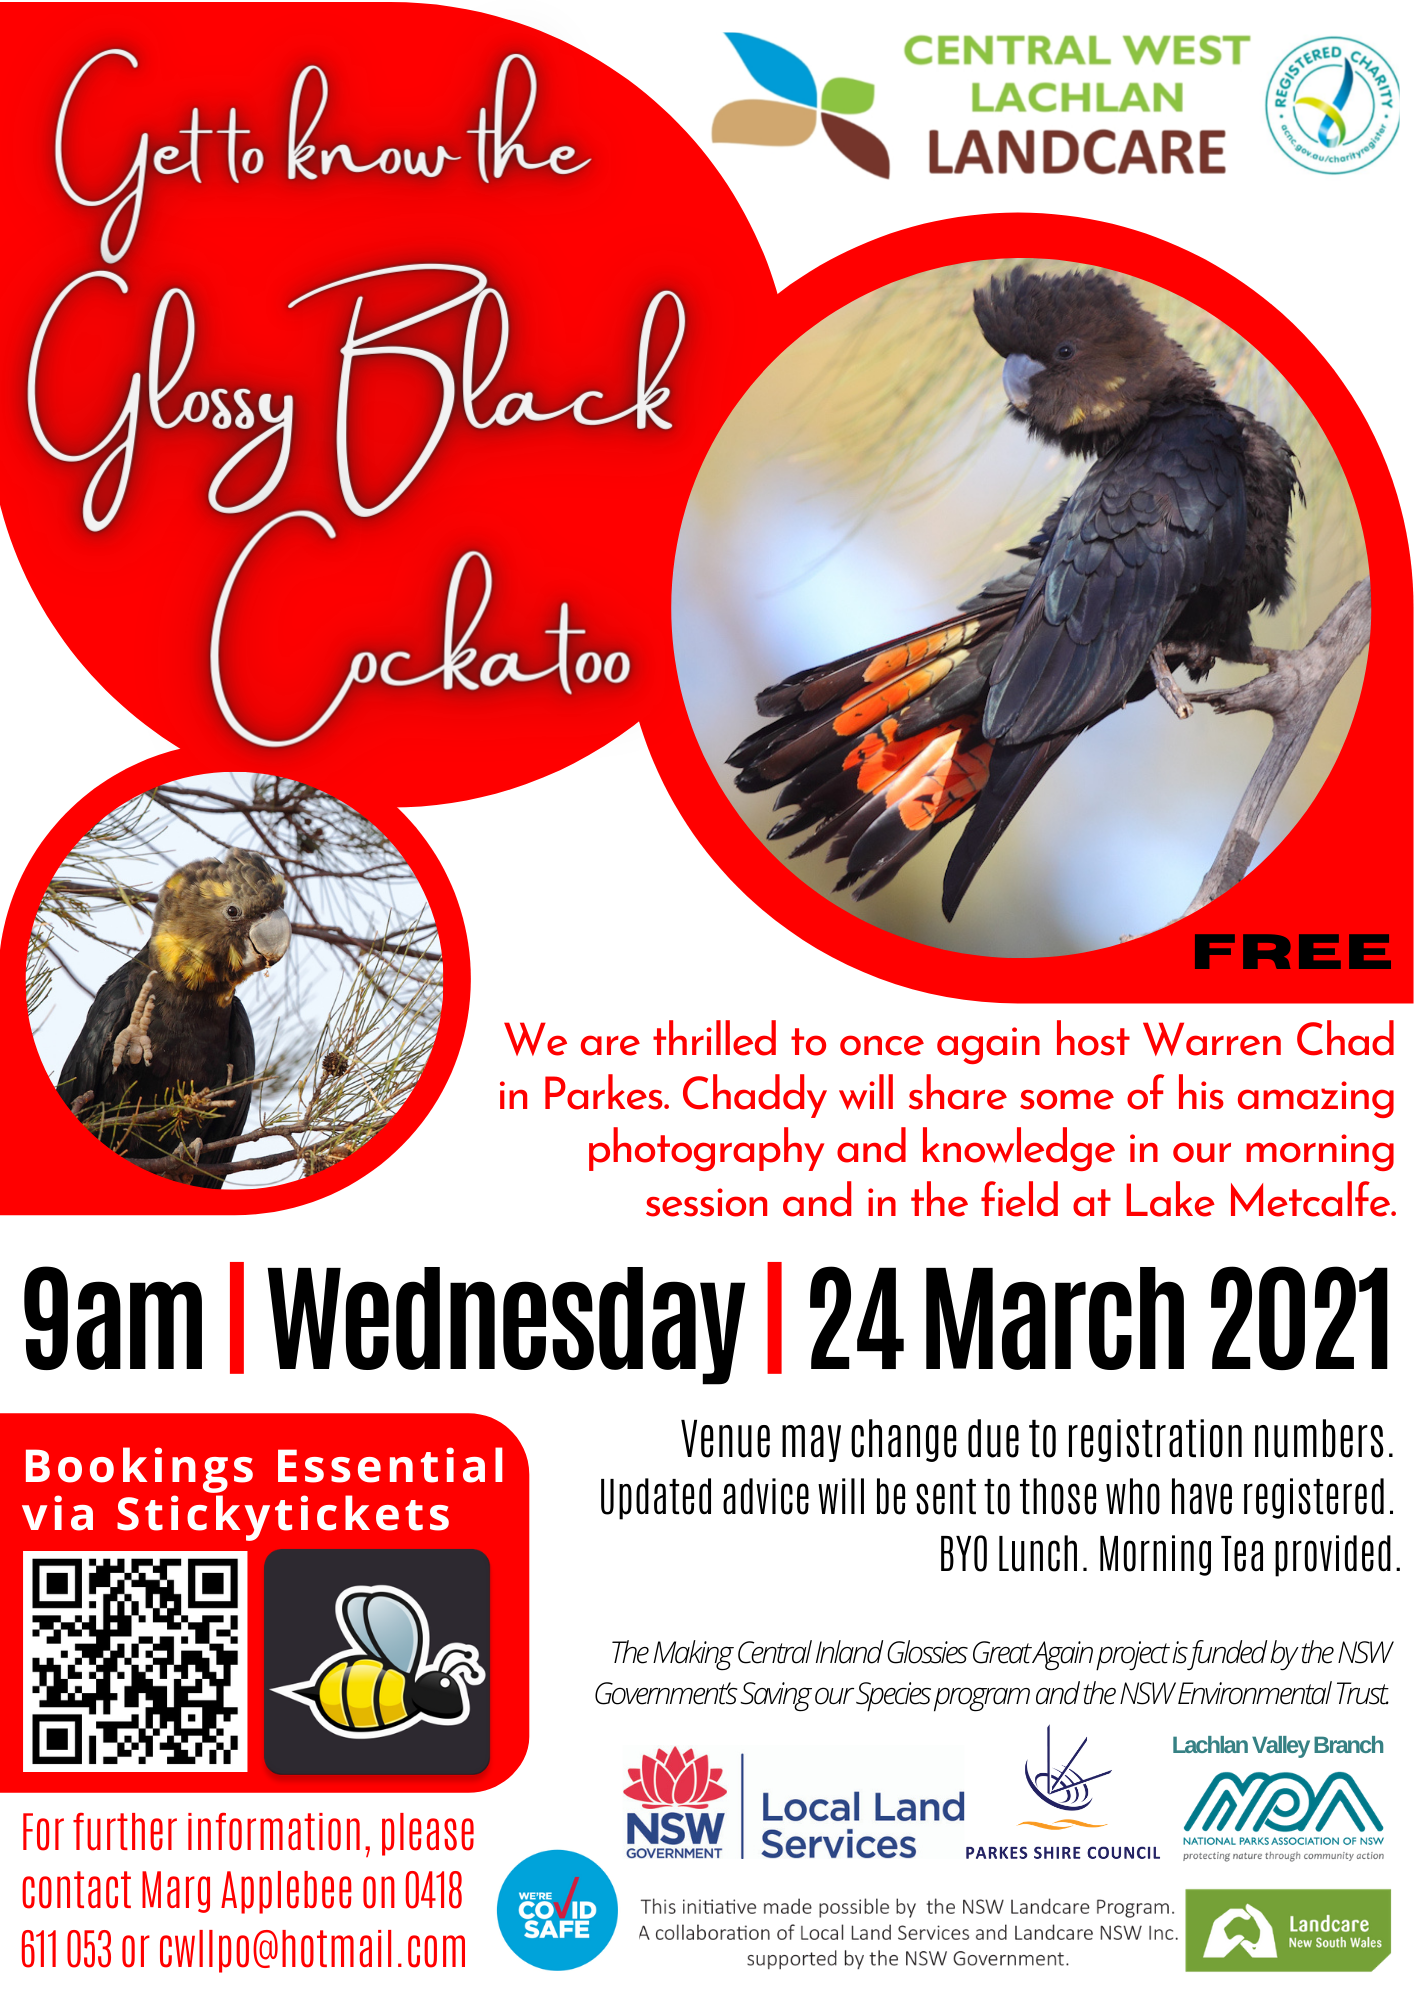 Get to Know the Glossy Black Cockatoo (24-3-2021)